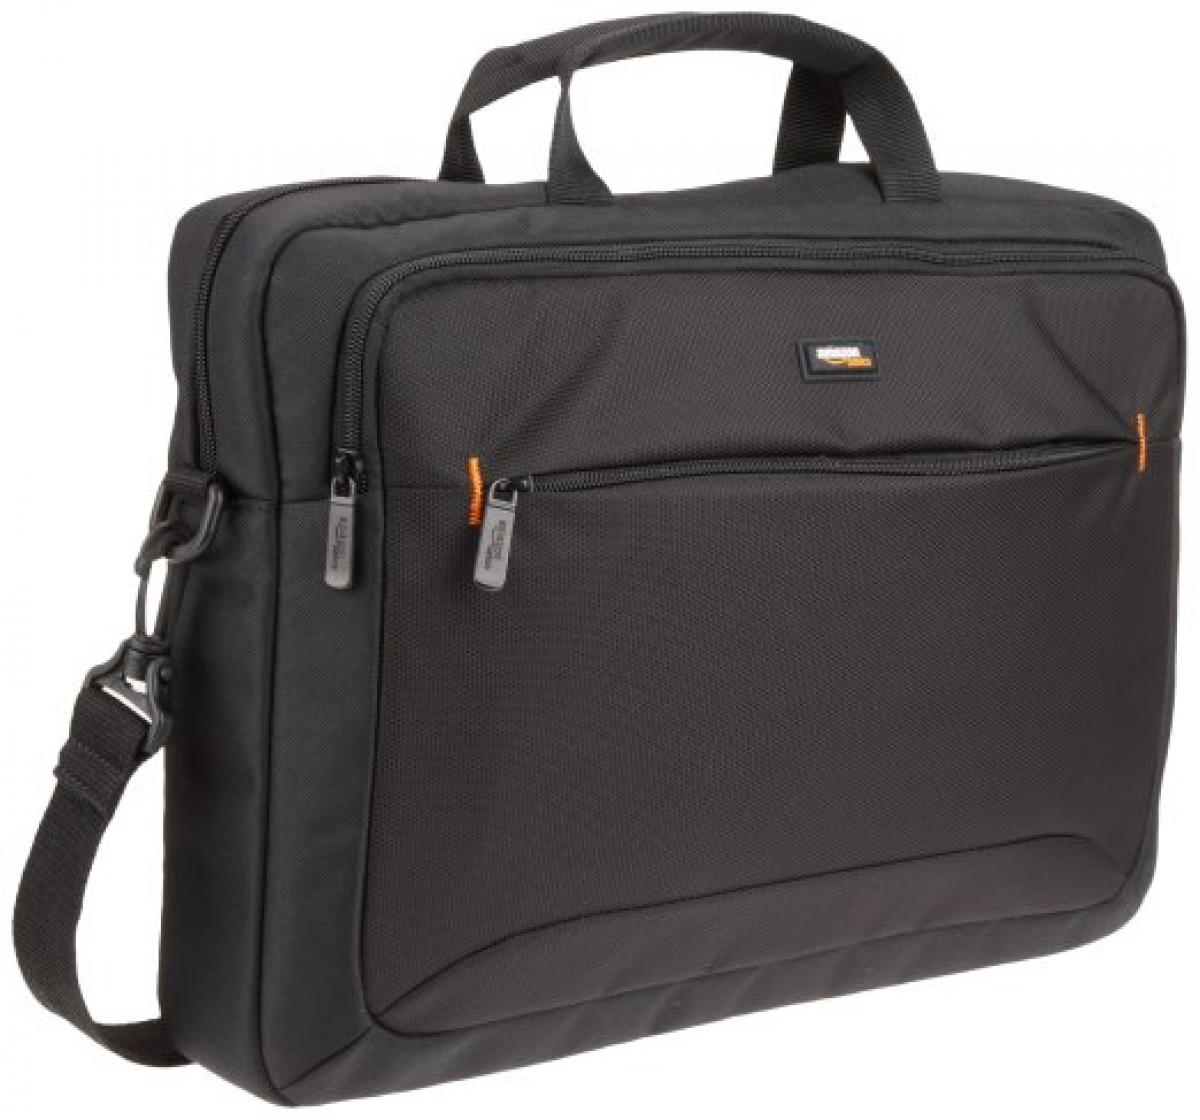 15.6-Inch Laptop and Tablet Bag